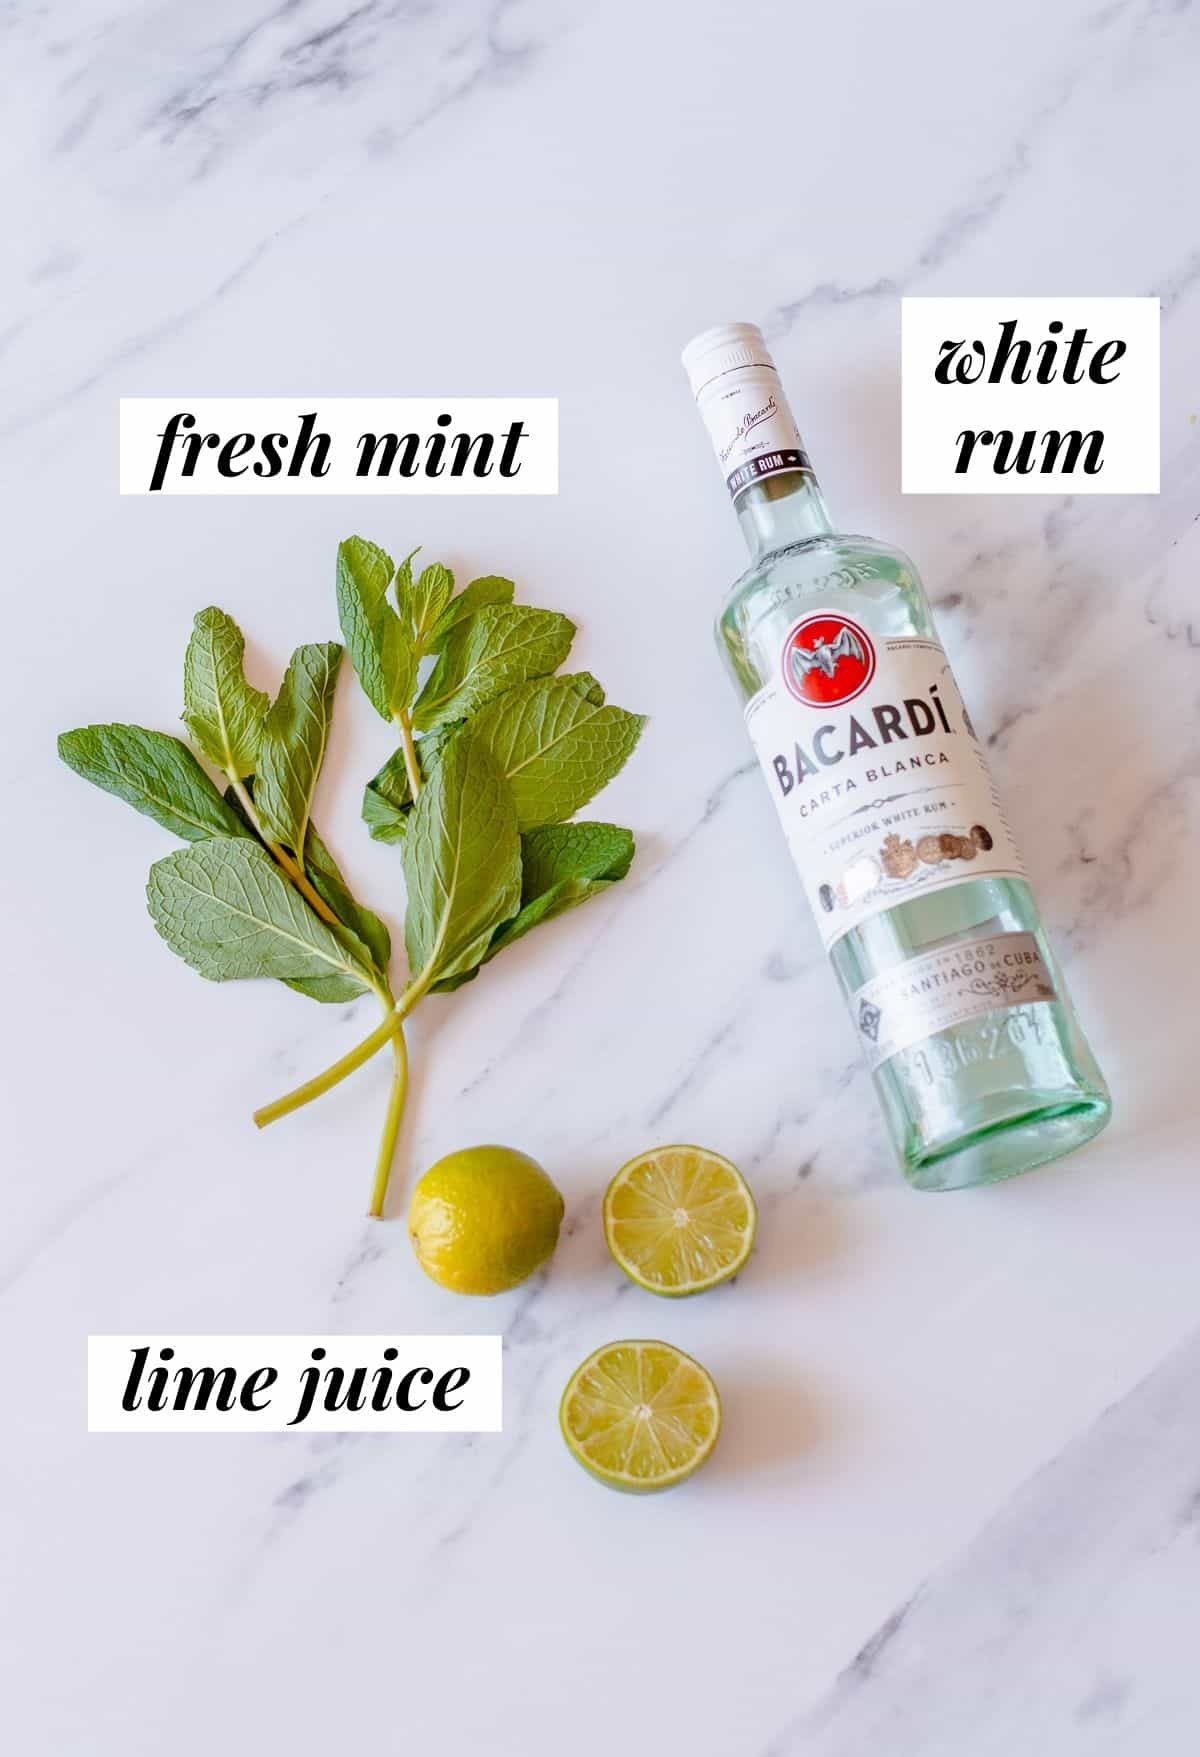 fresh mint, limes and bacardi rum sitting on a white marble background.